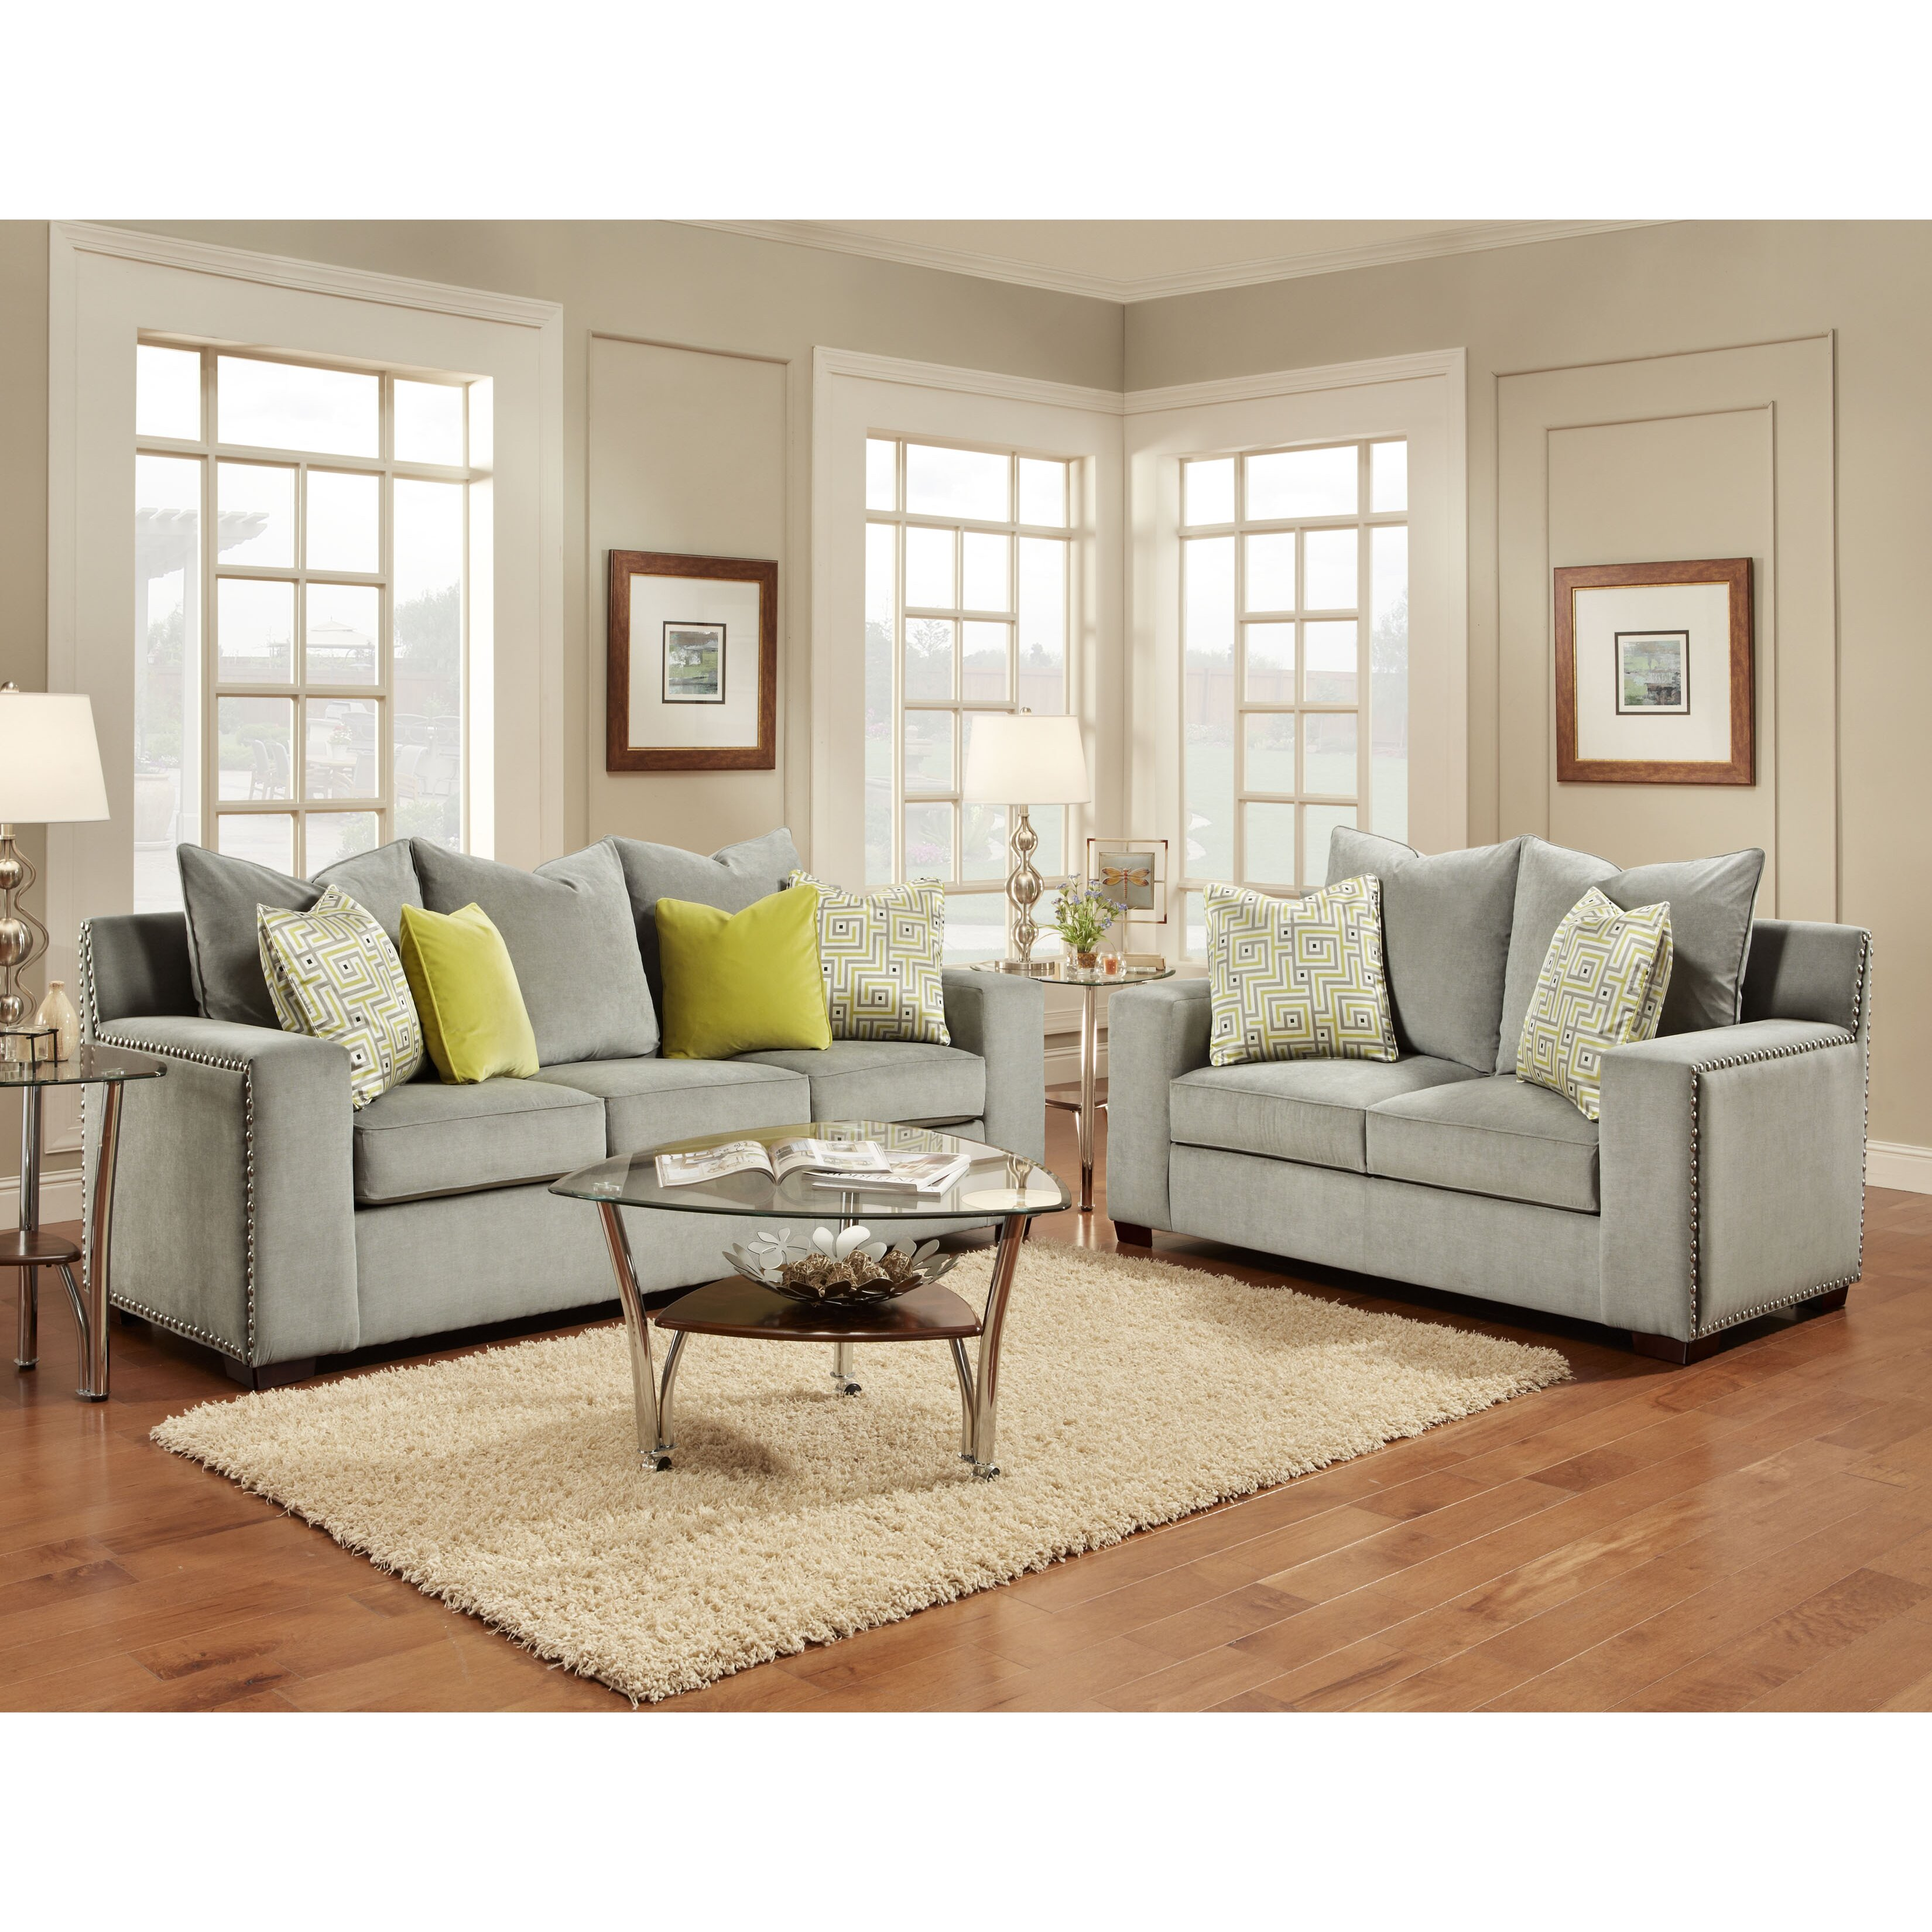 Wildon Home Kingston Living Room Collection Reviews